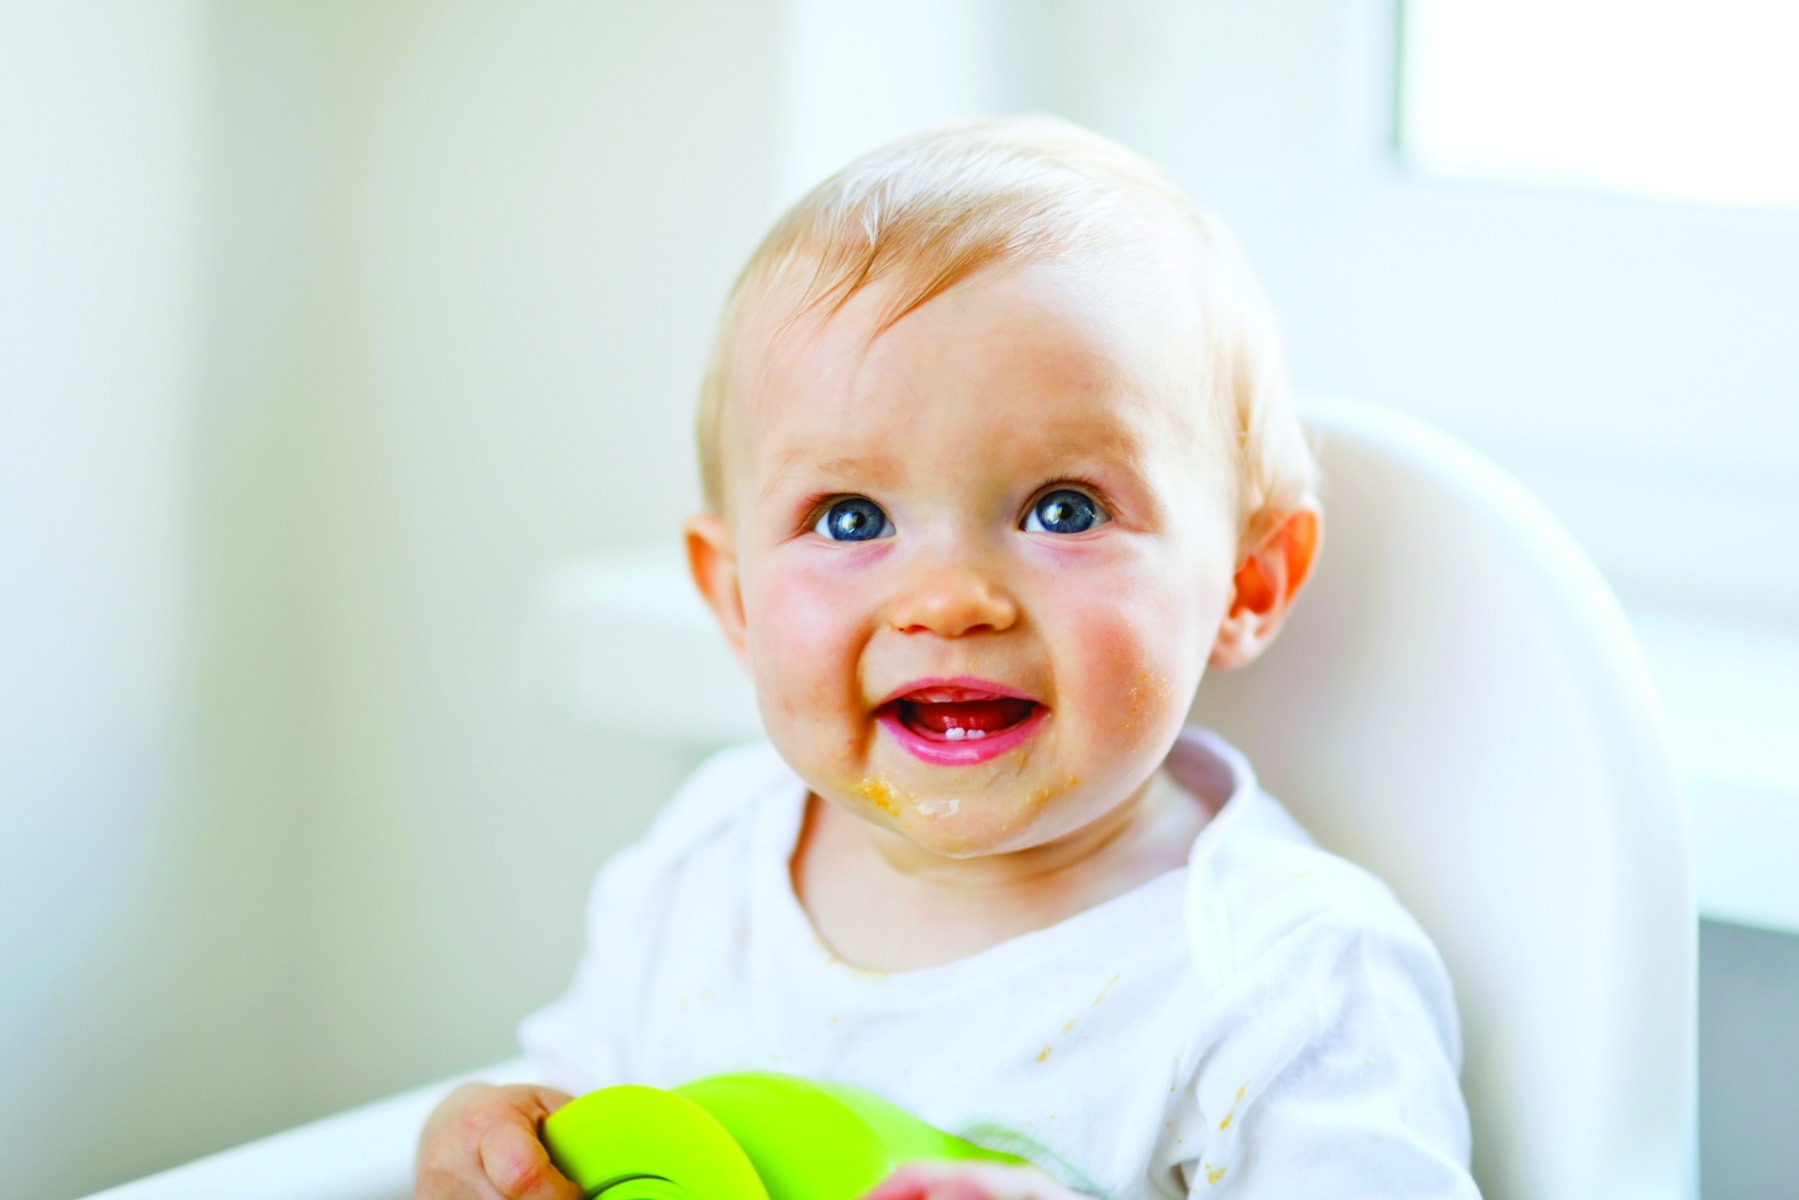 The first juice for the baby: we introduce tastes in turn